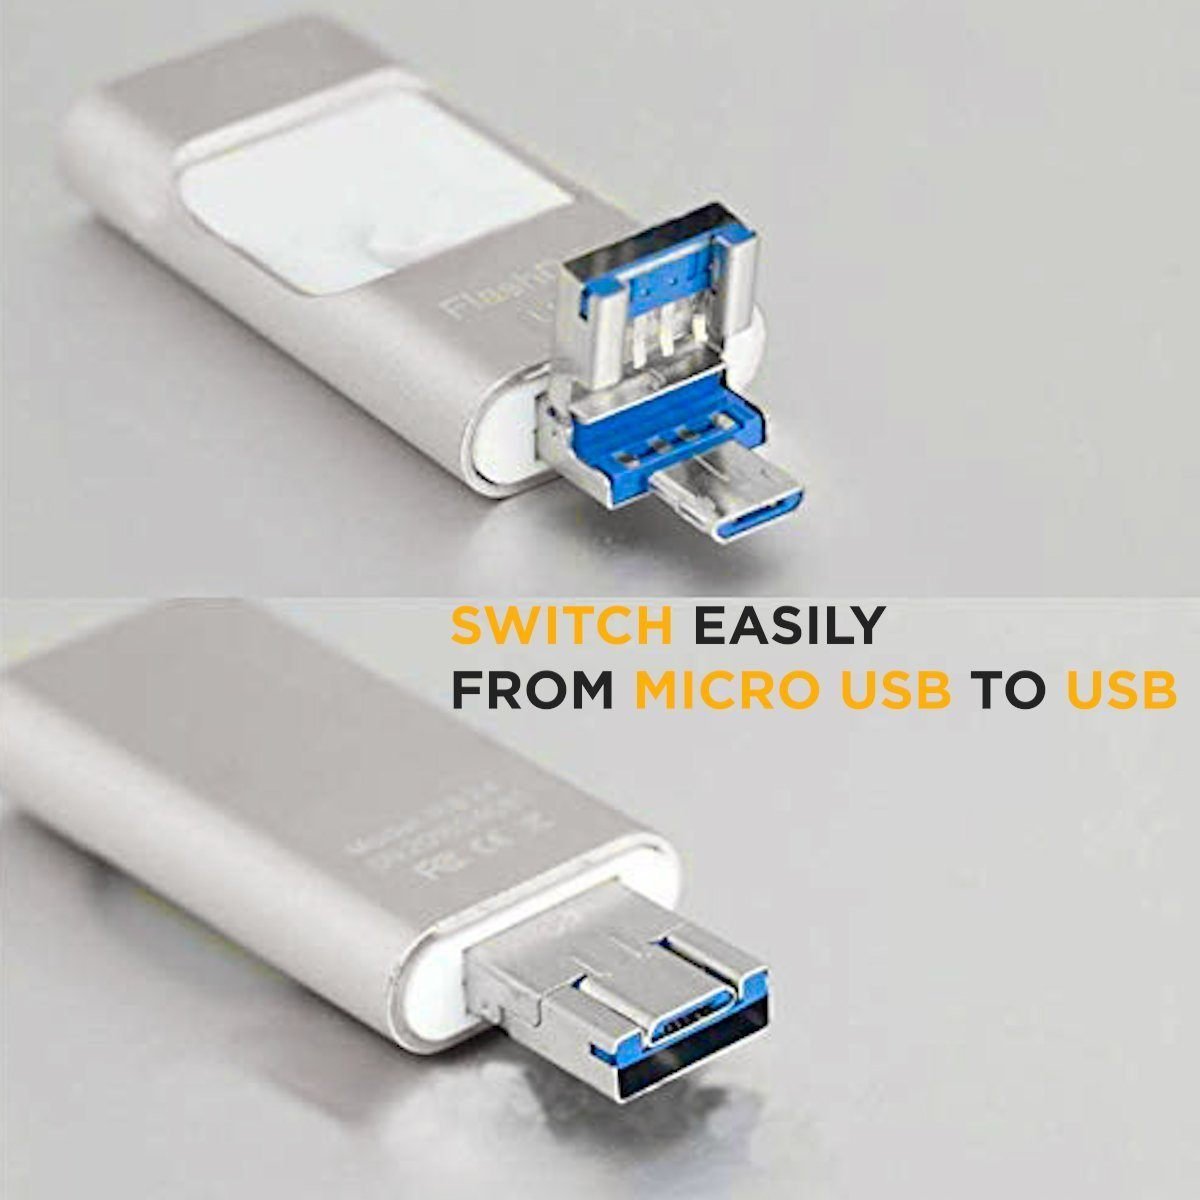 3 In 1 USB Flash Drive